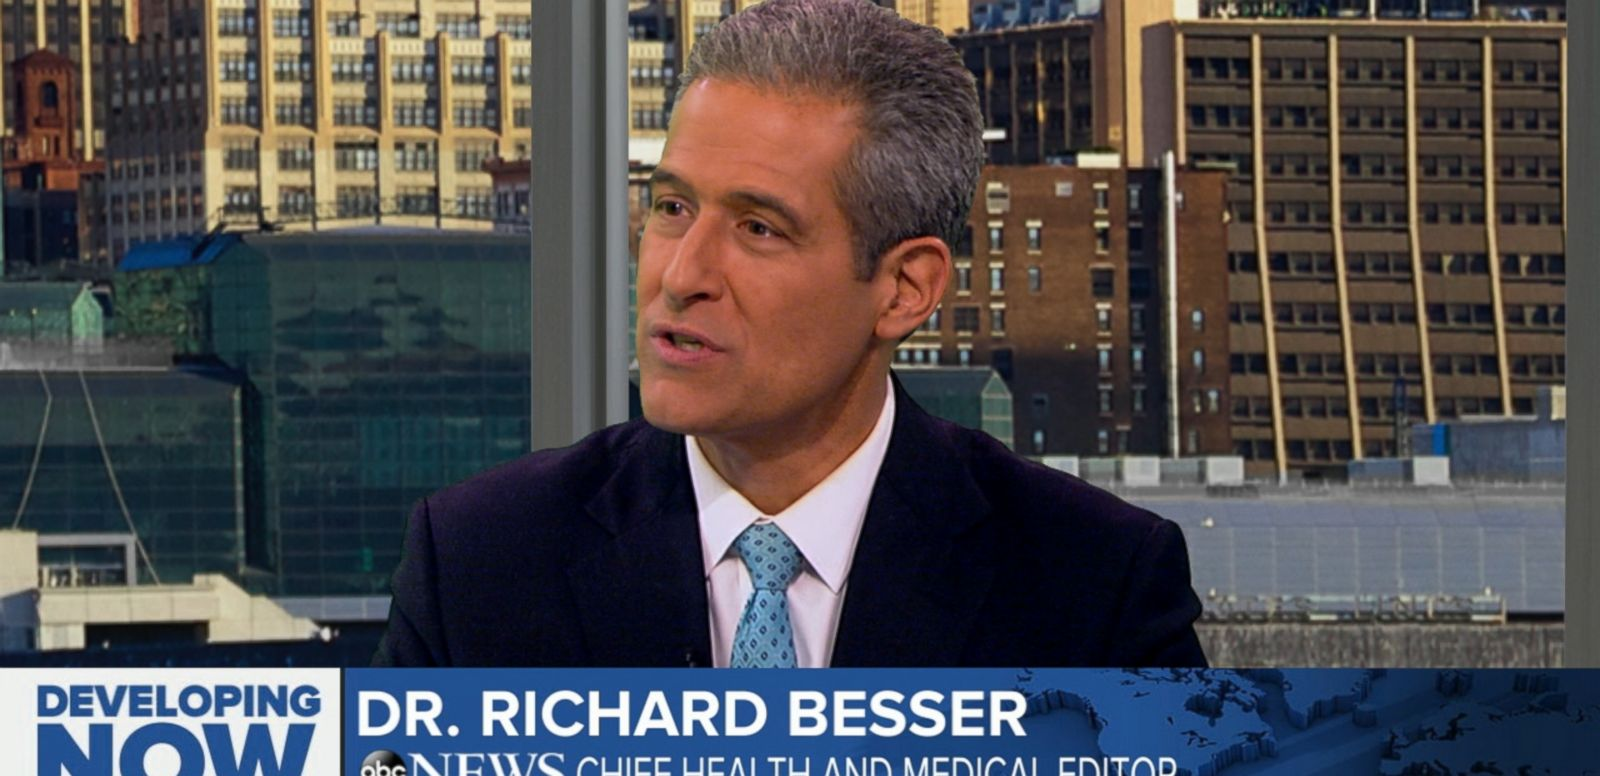 VIDEO: ABC News' Dr. Richard Besser dispels the myths and gives the facts about the resurging measles virus.